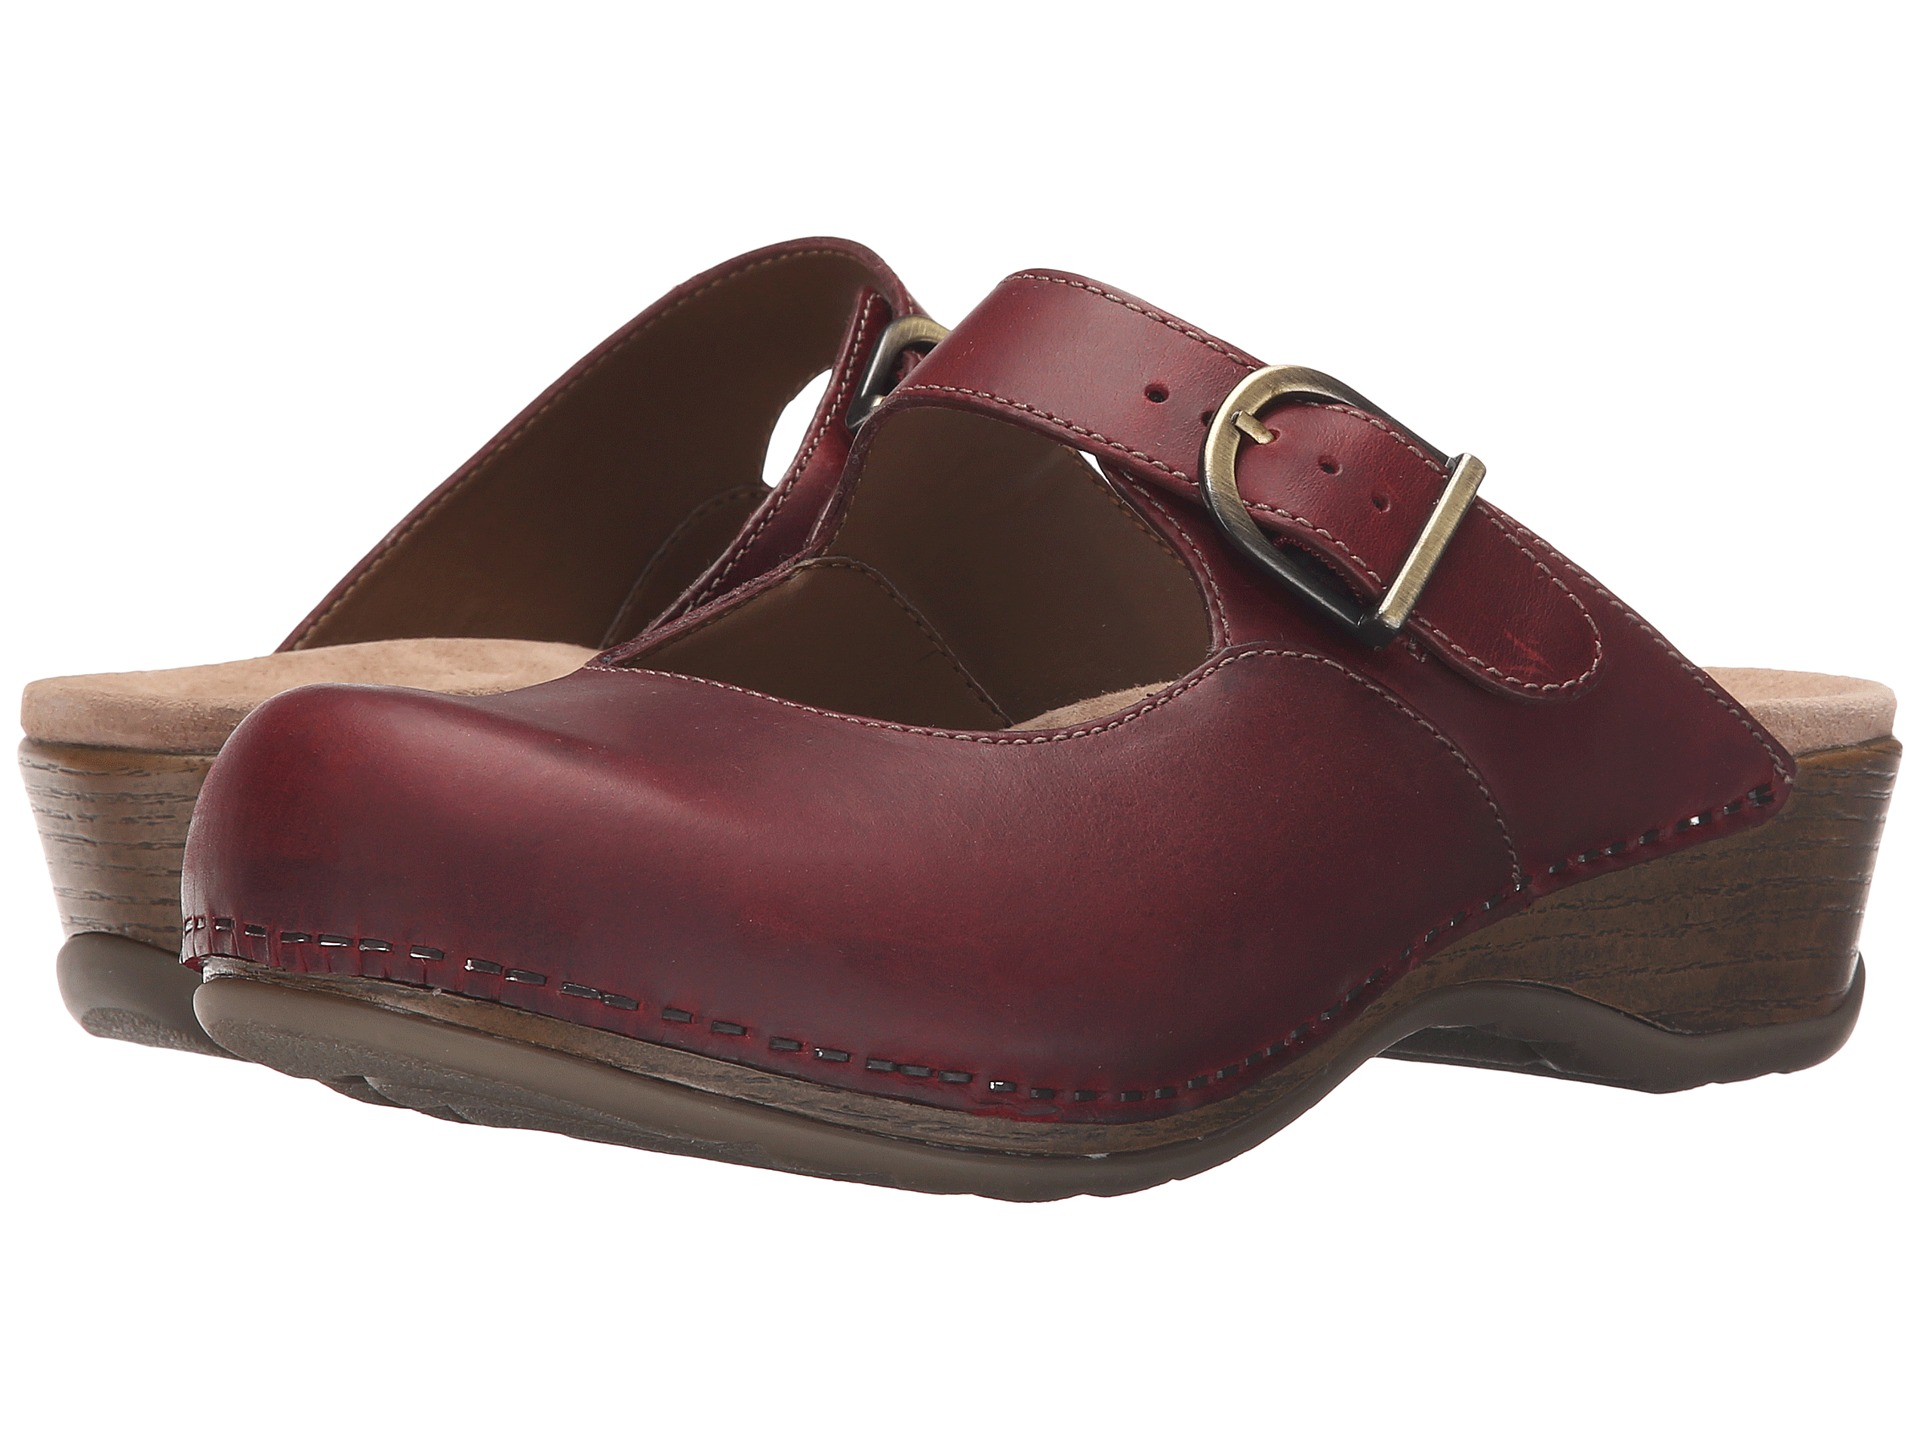 Dansko Red Sandals Sale